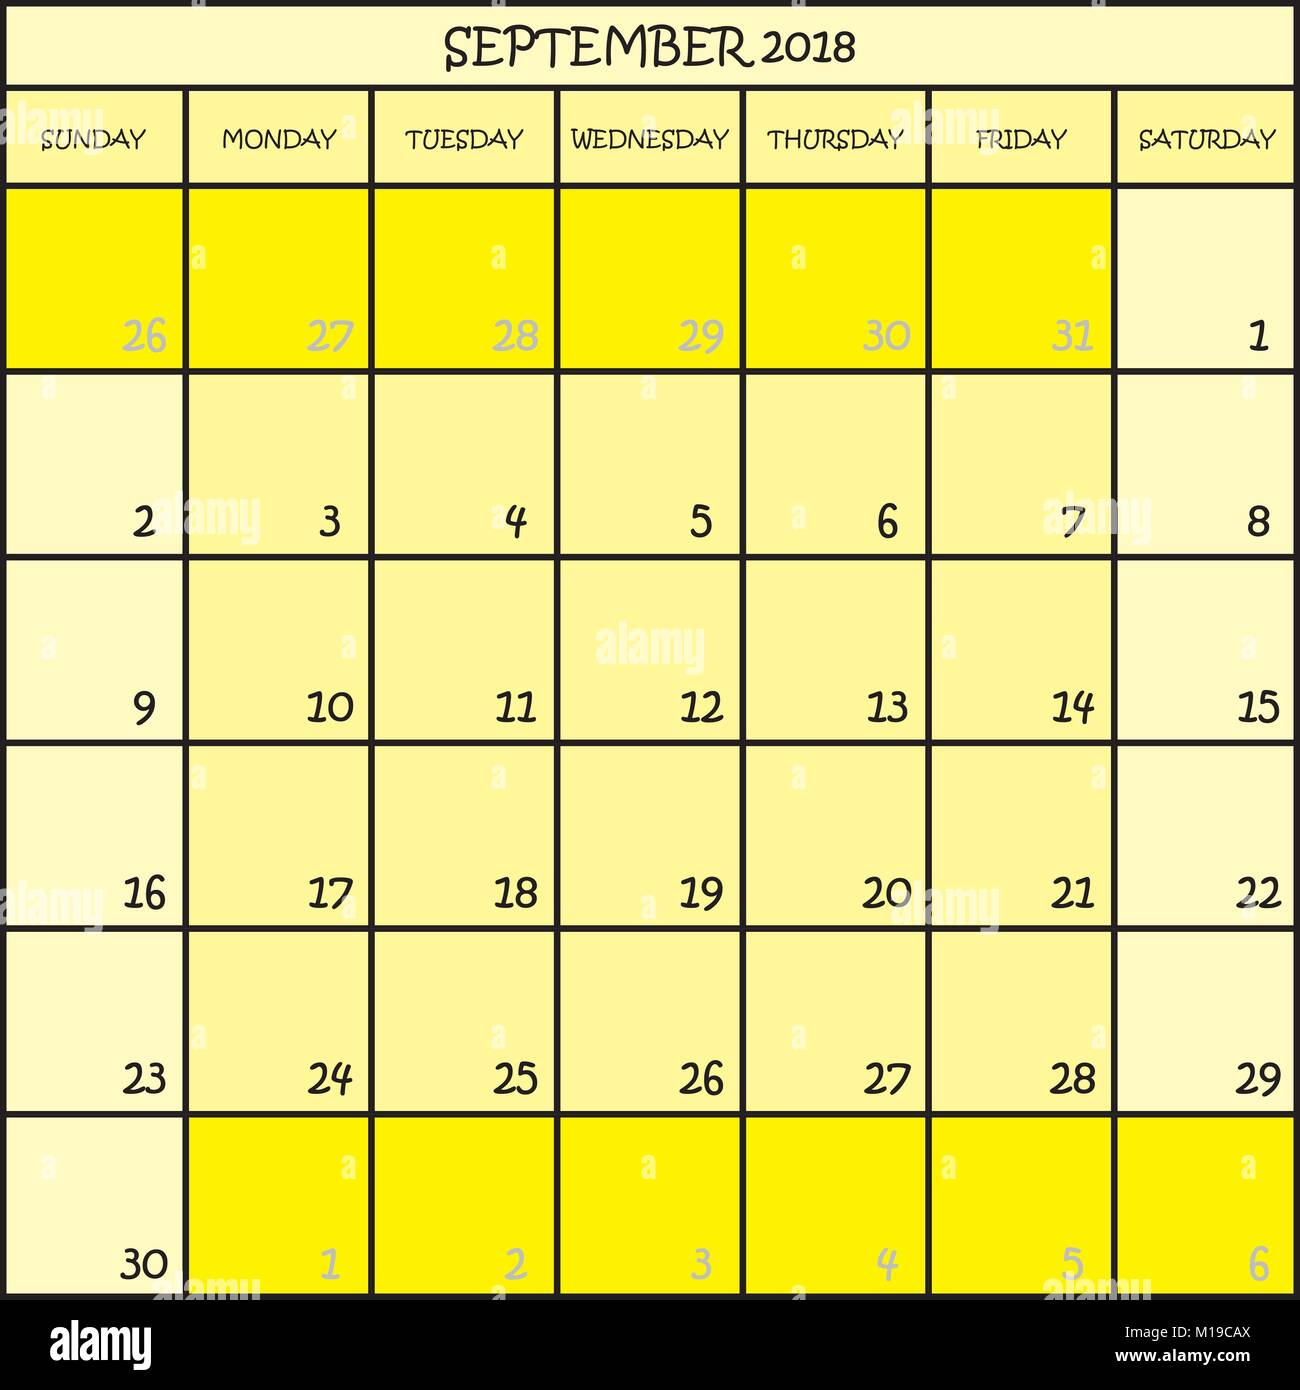 calendar planner month september 2018 on three shades of yellow color background